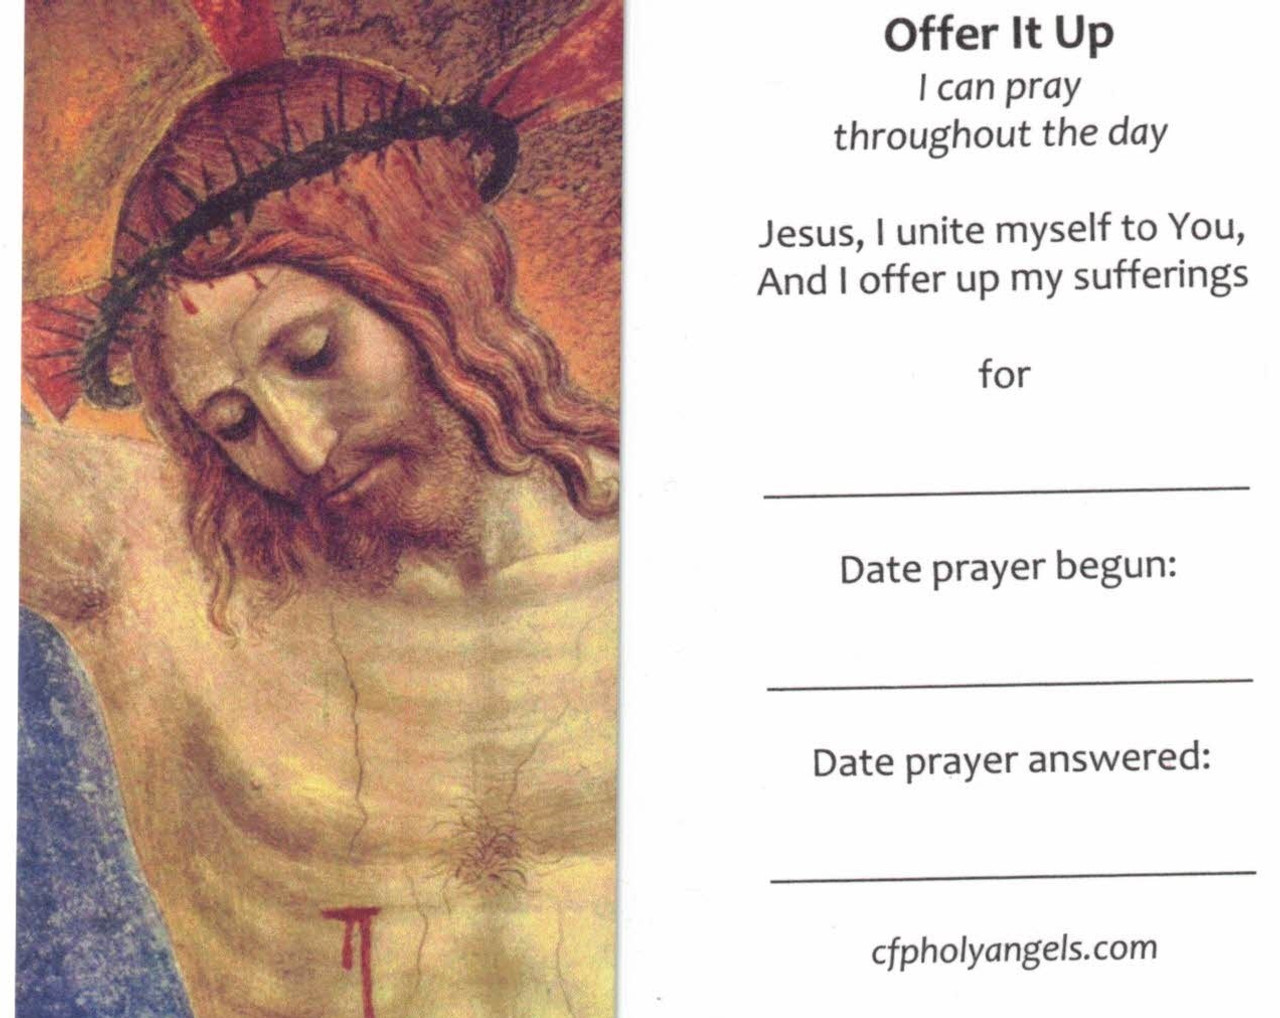 Offer It Up Prayer Card, Offer Up Your Sufferings